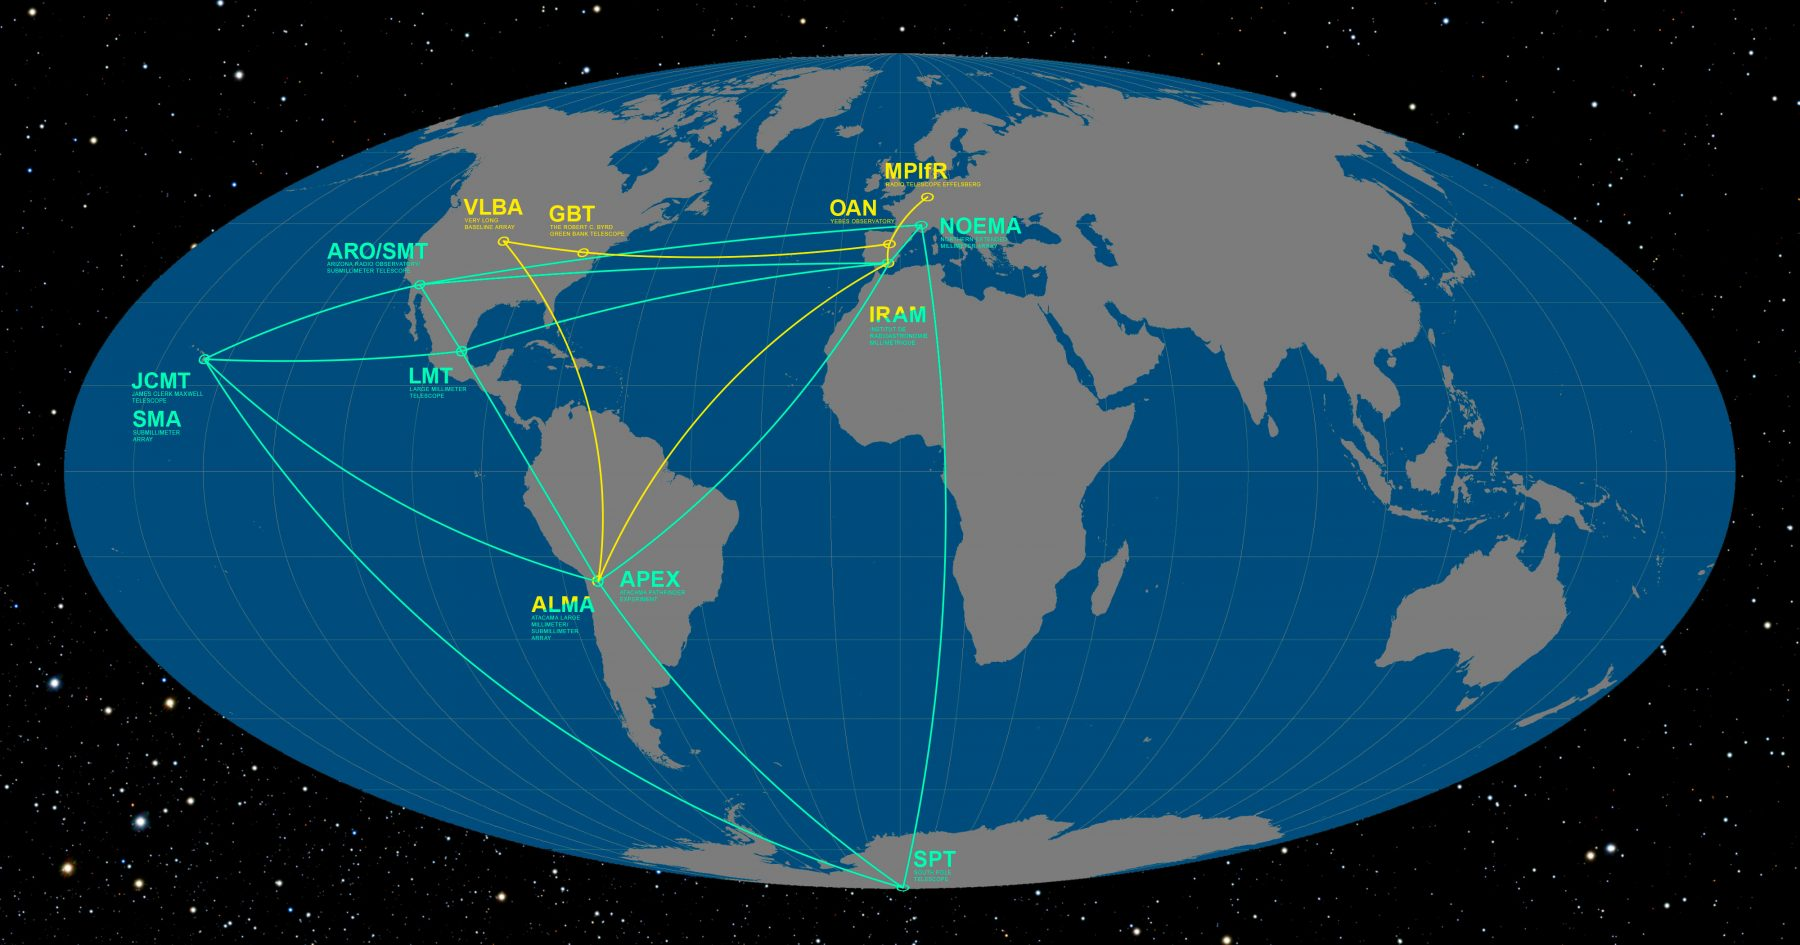 The image shows the locations of the radio telescopes joining the Event Horizon Telescope) and the Global mm-VLBI Array